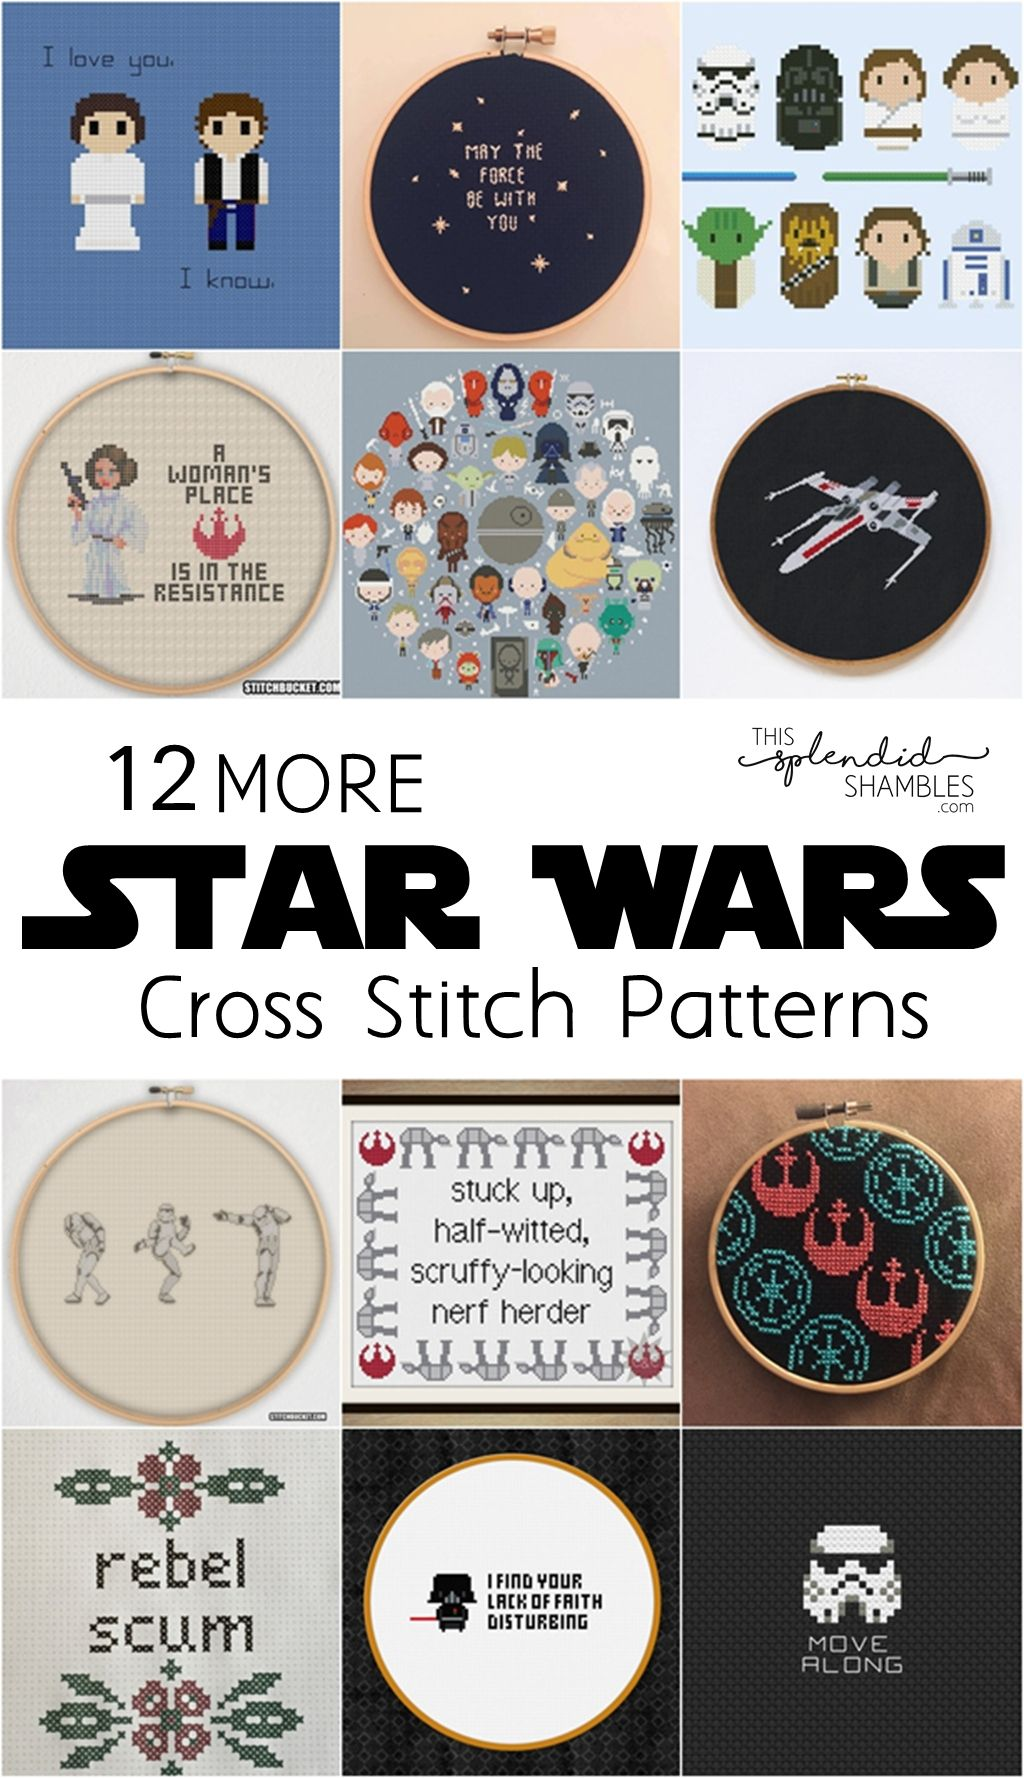 12 MORE Star Wars Cross Stitch Patterns. May the 4th Be With You ...